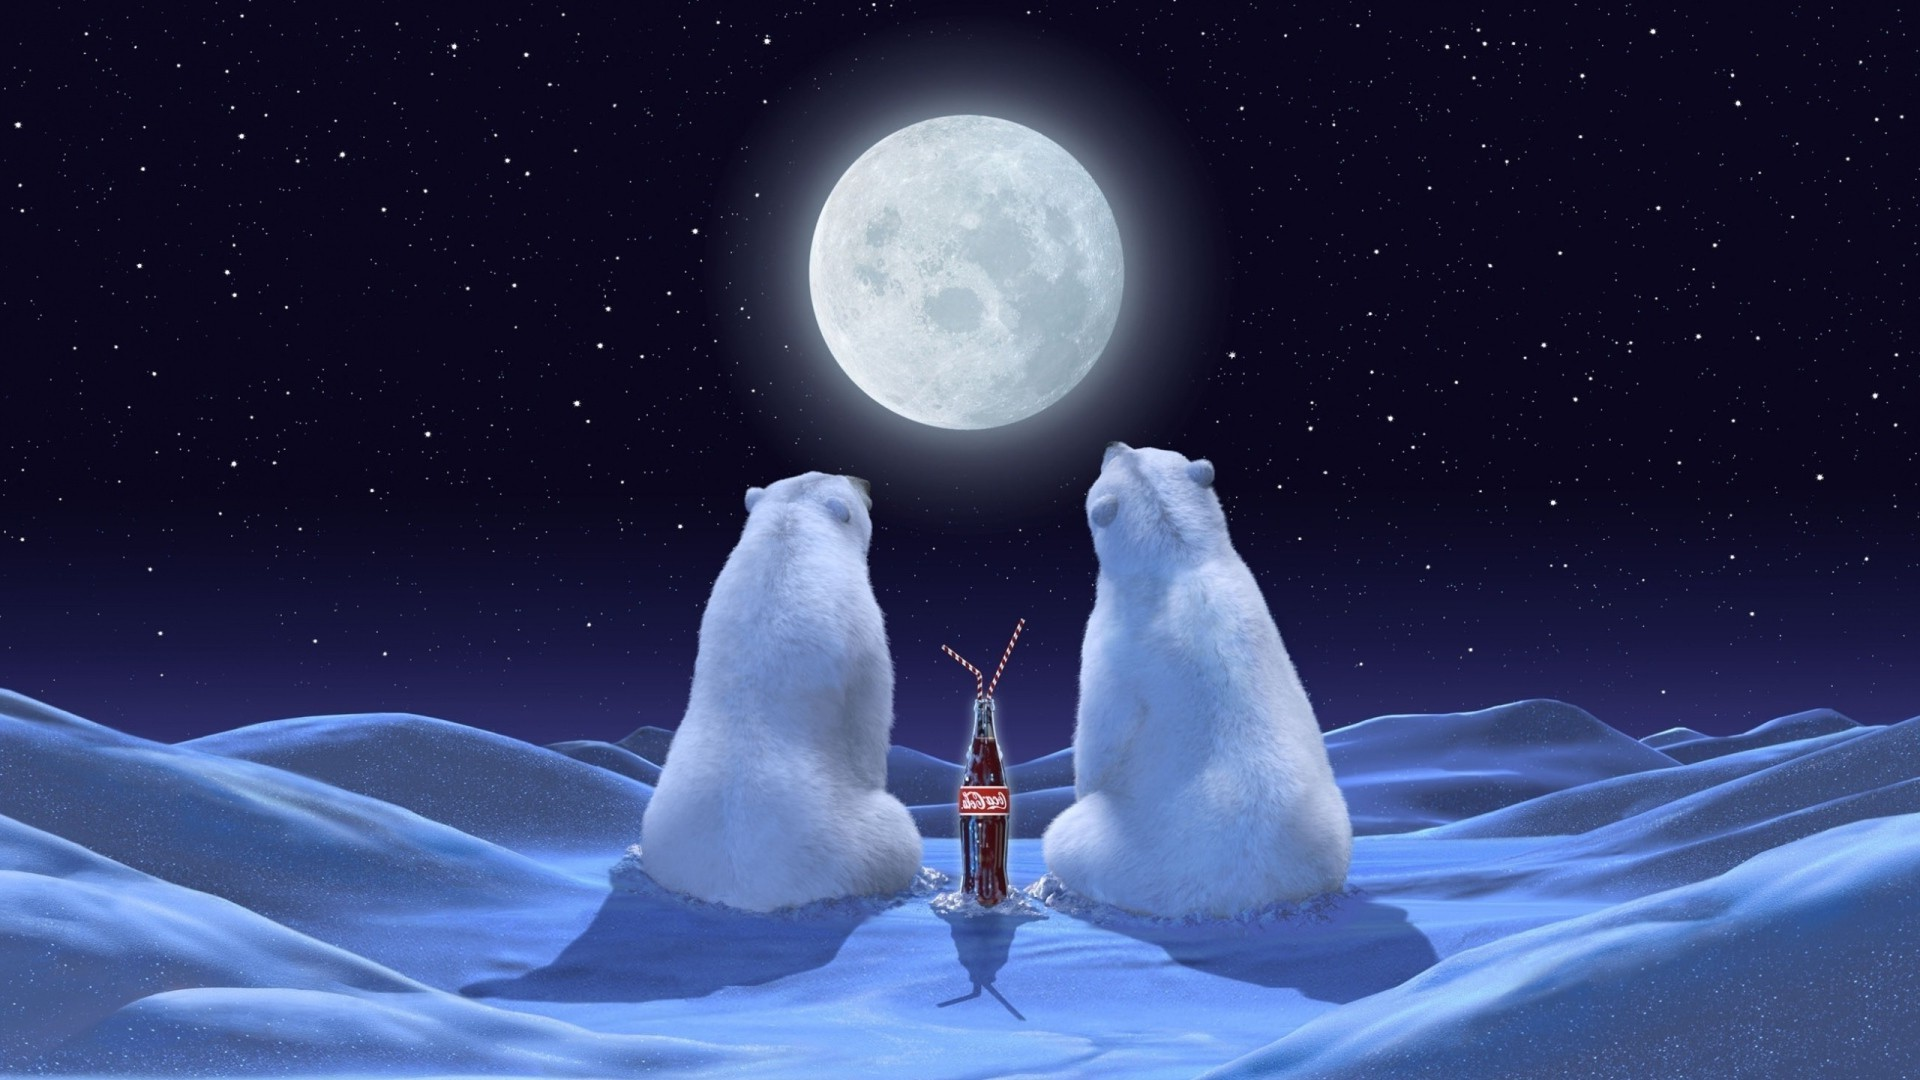 polar bears cocacola stars moon android wallpapers